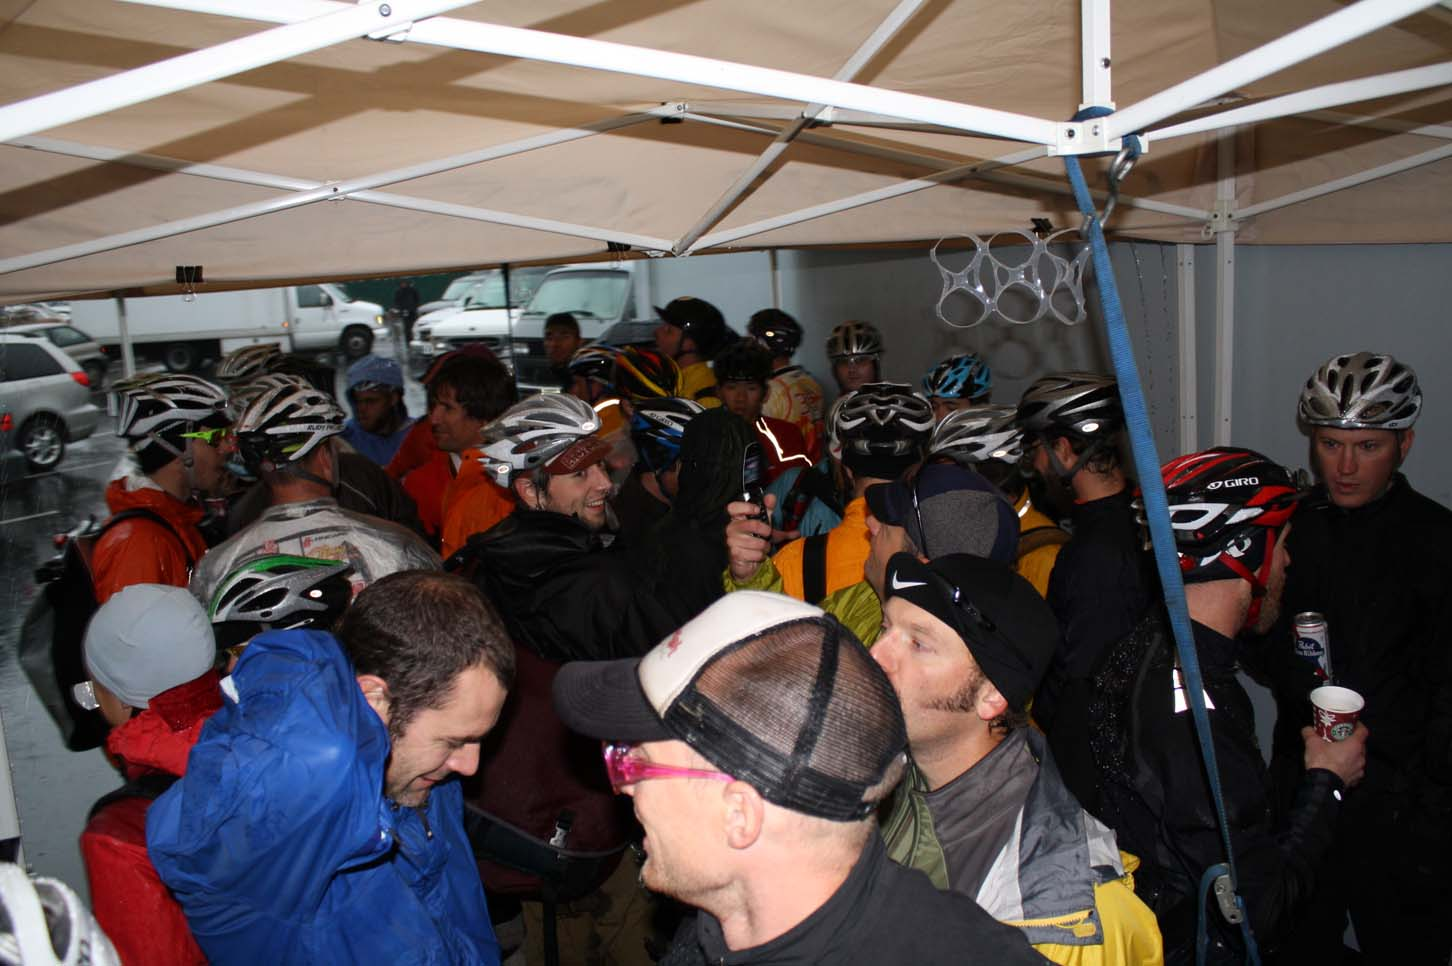 Rain and cyclocross in Portland. Perfect.